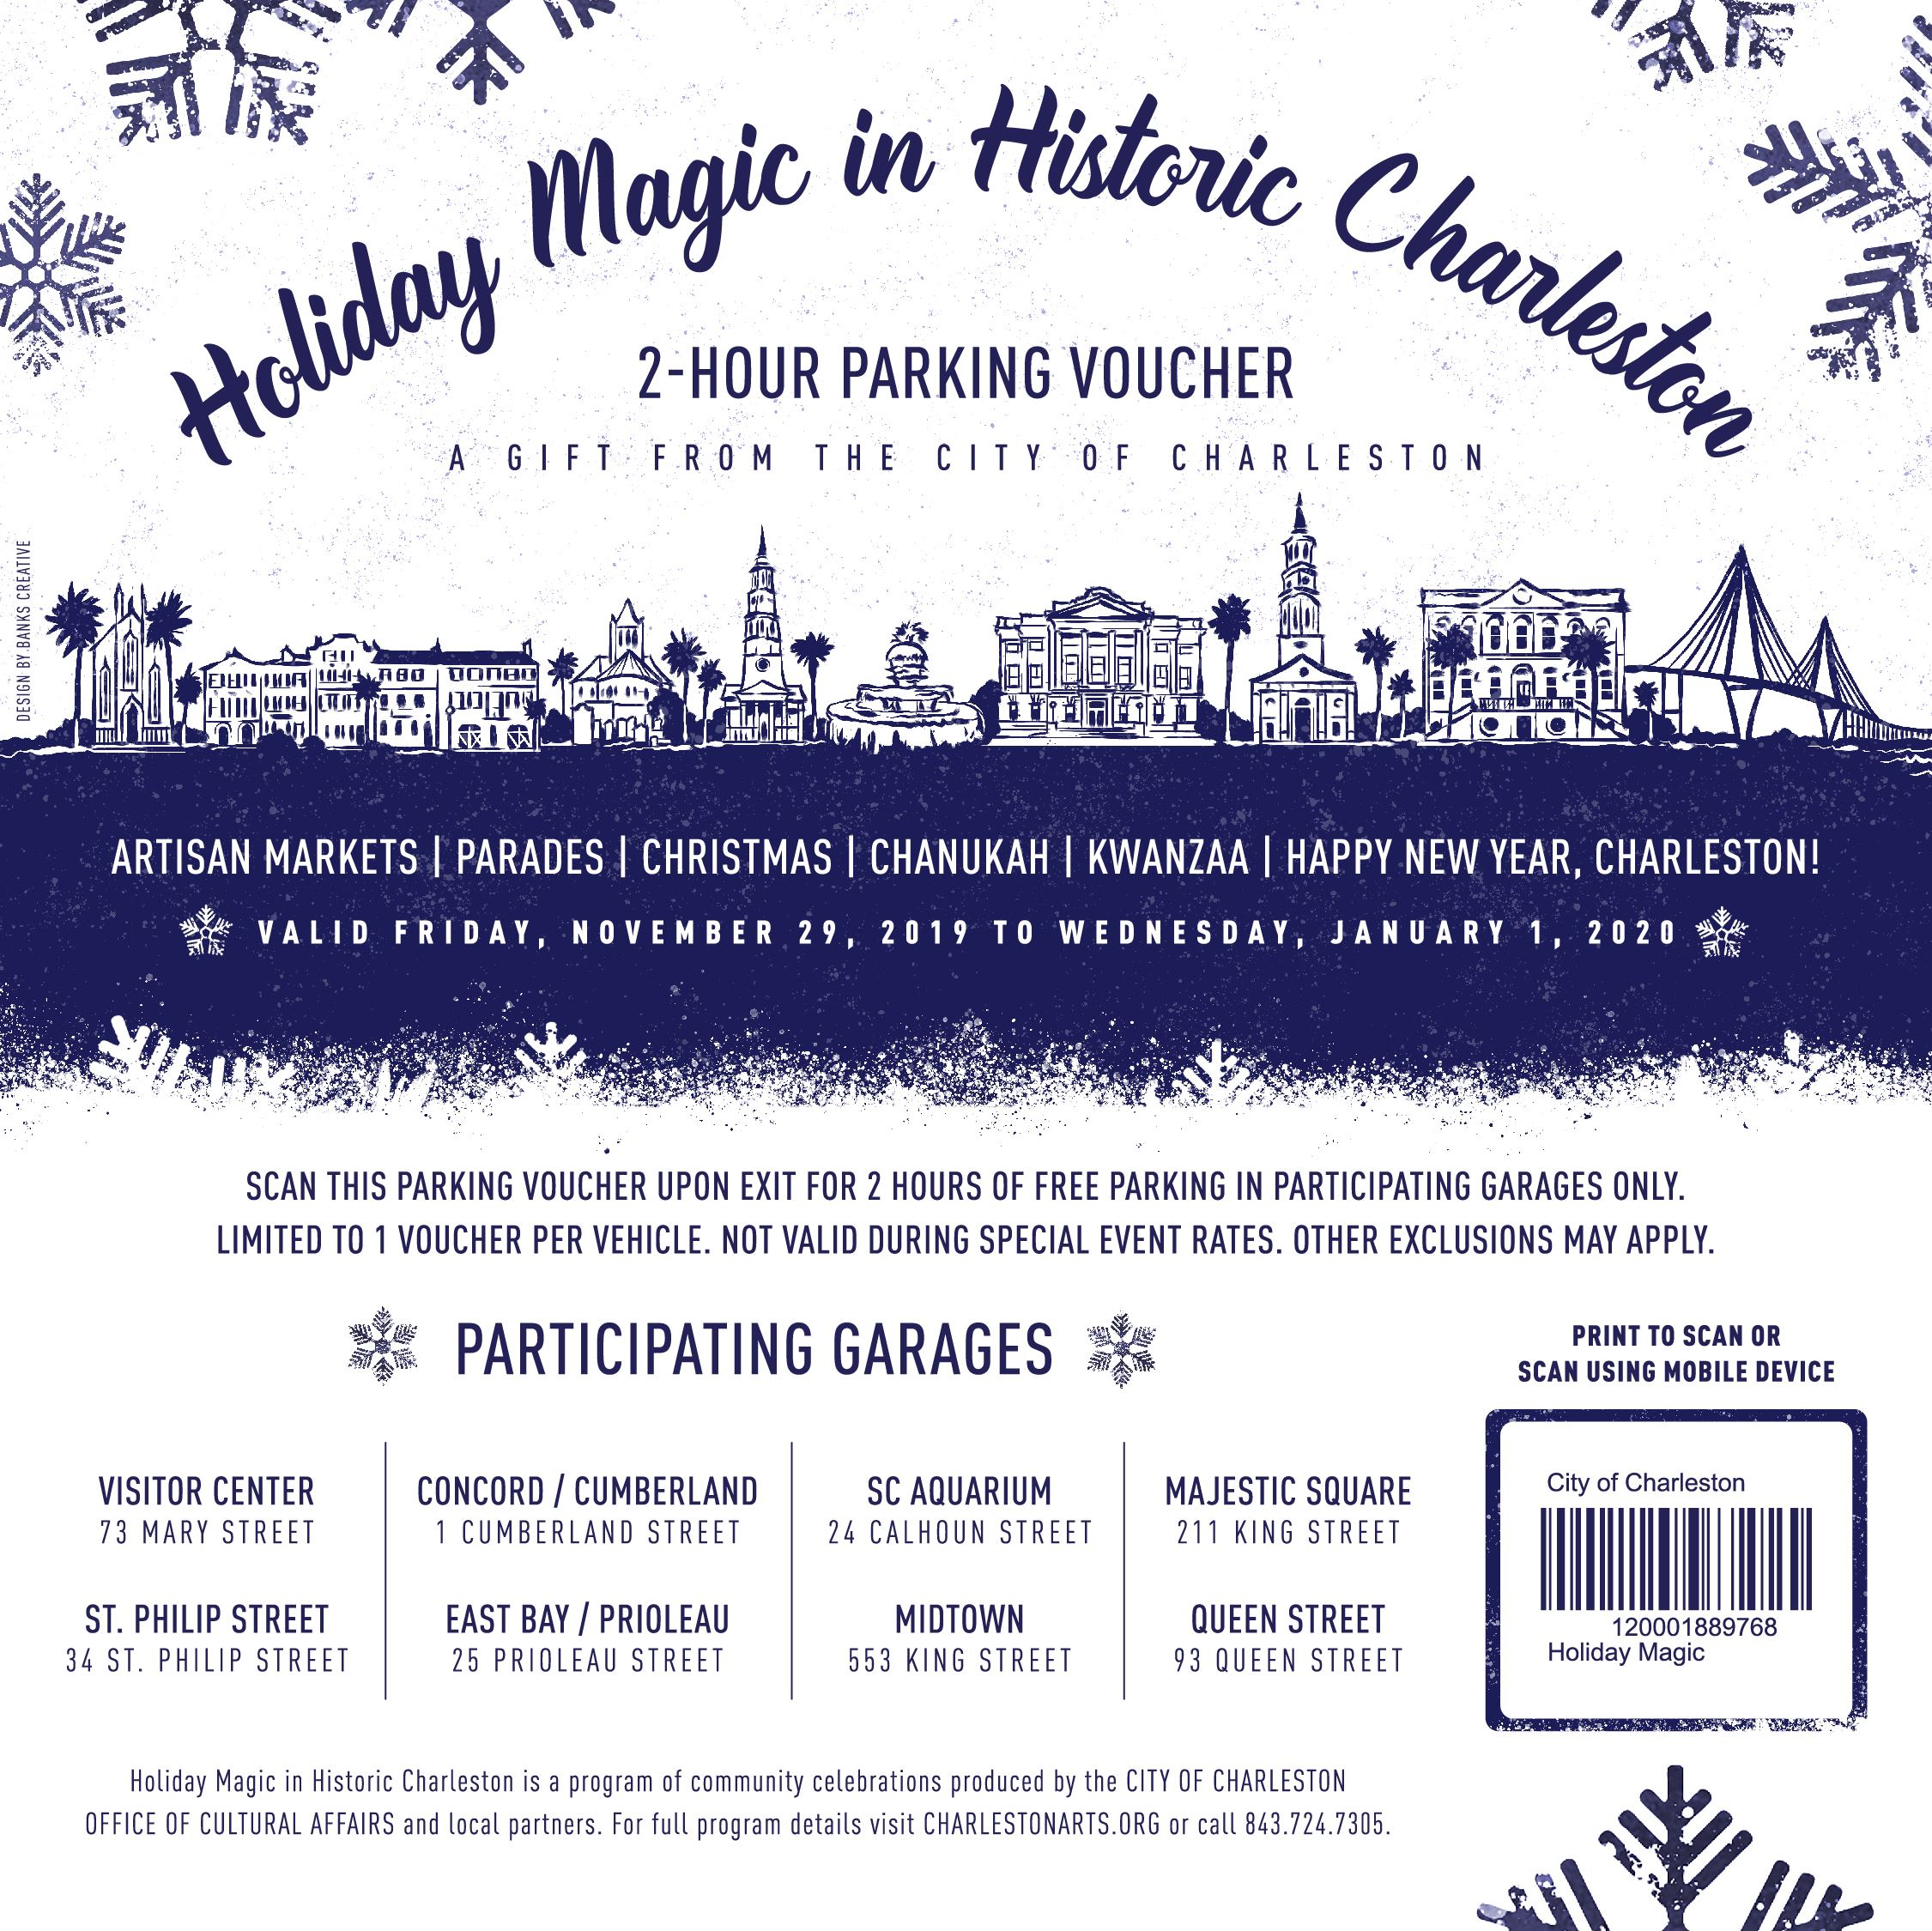 HolidayMagic2019_ParkingVoucher-web-barcode_v3 Opens in new window